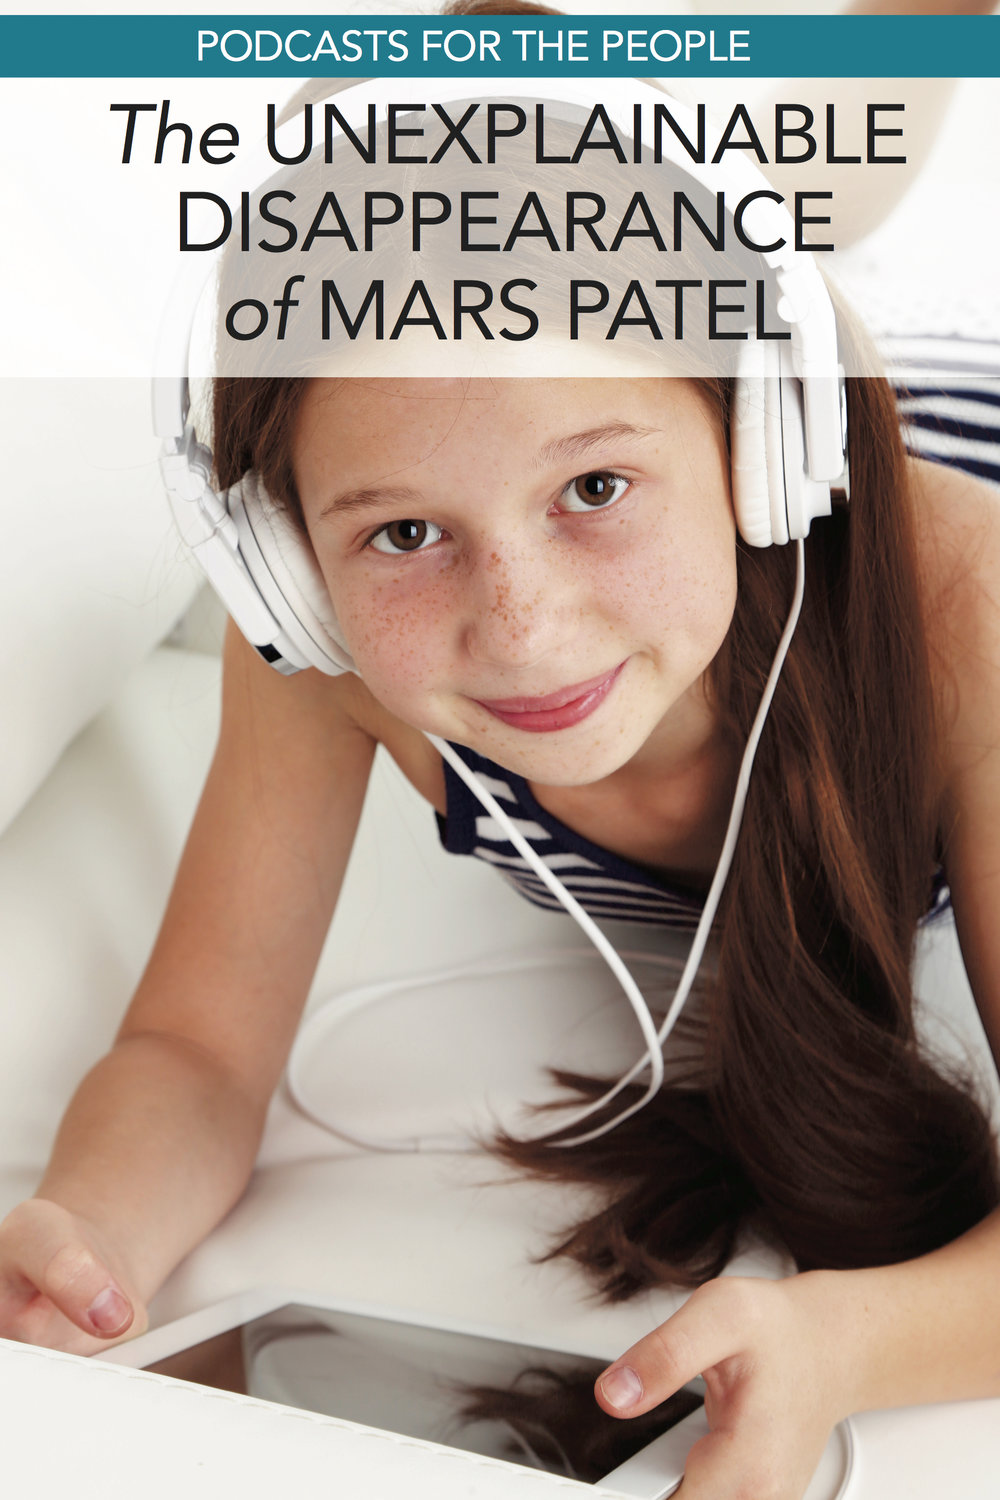 Find Your Next Podcast Obsession: The Unexplainable Disappearance of Mars Patel